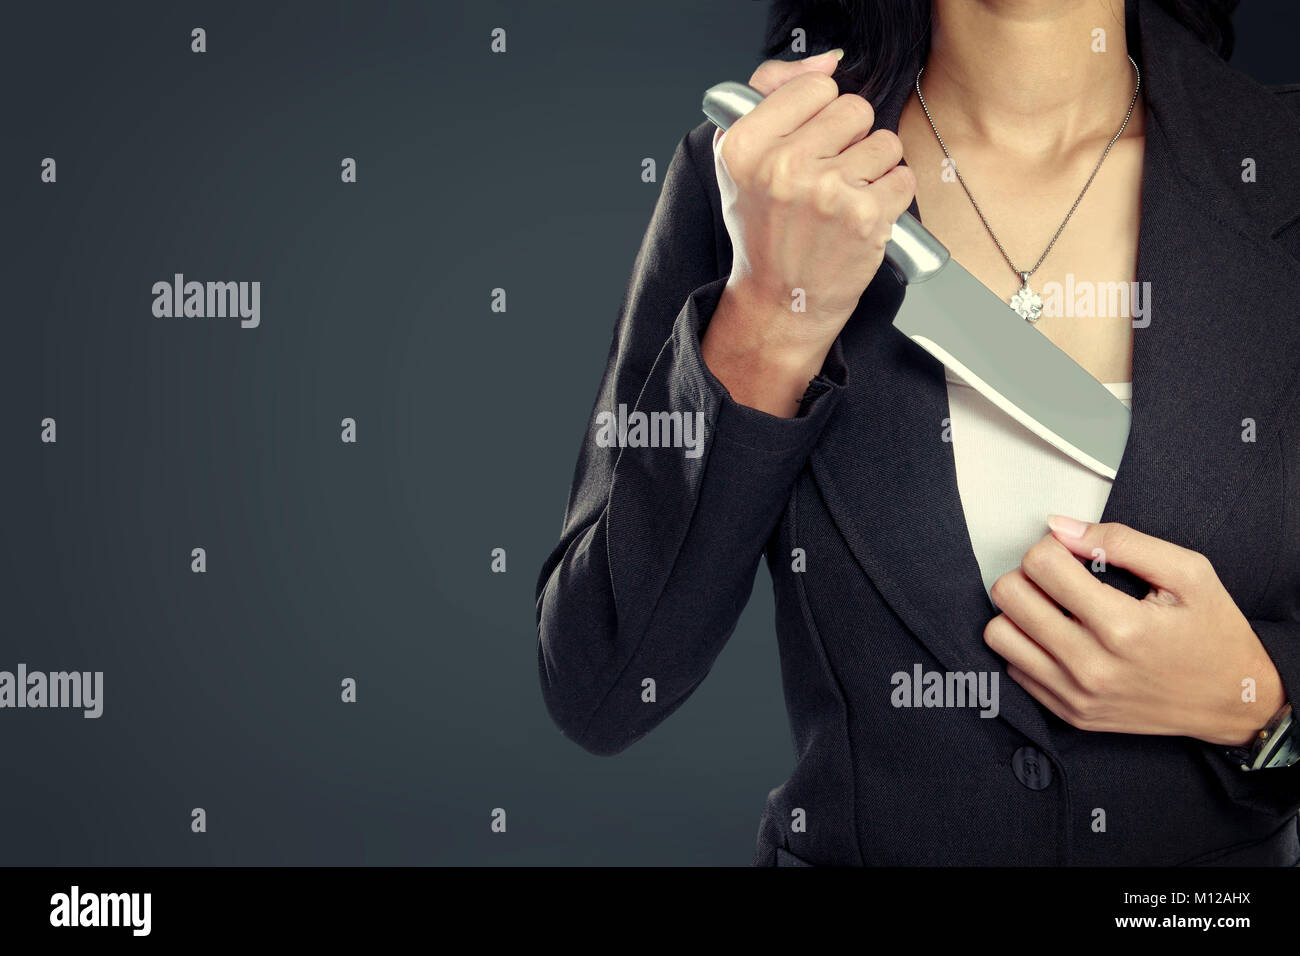 portrait of Business woman pull out his Knife. ready to attack Stock Photo